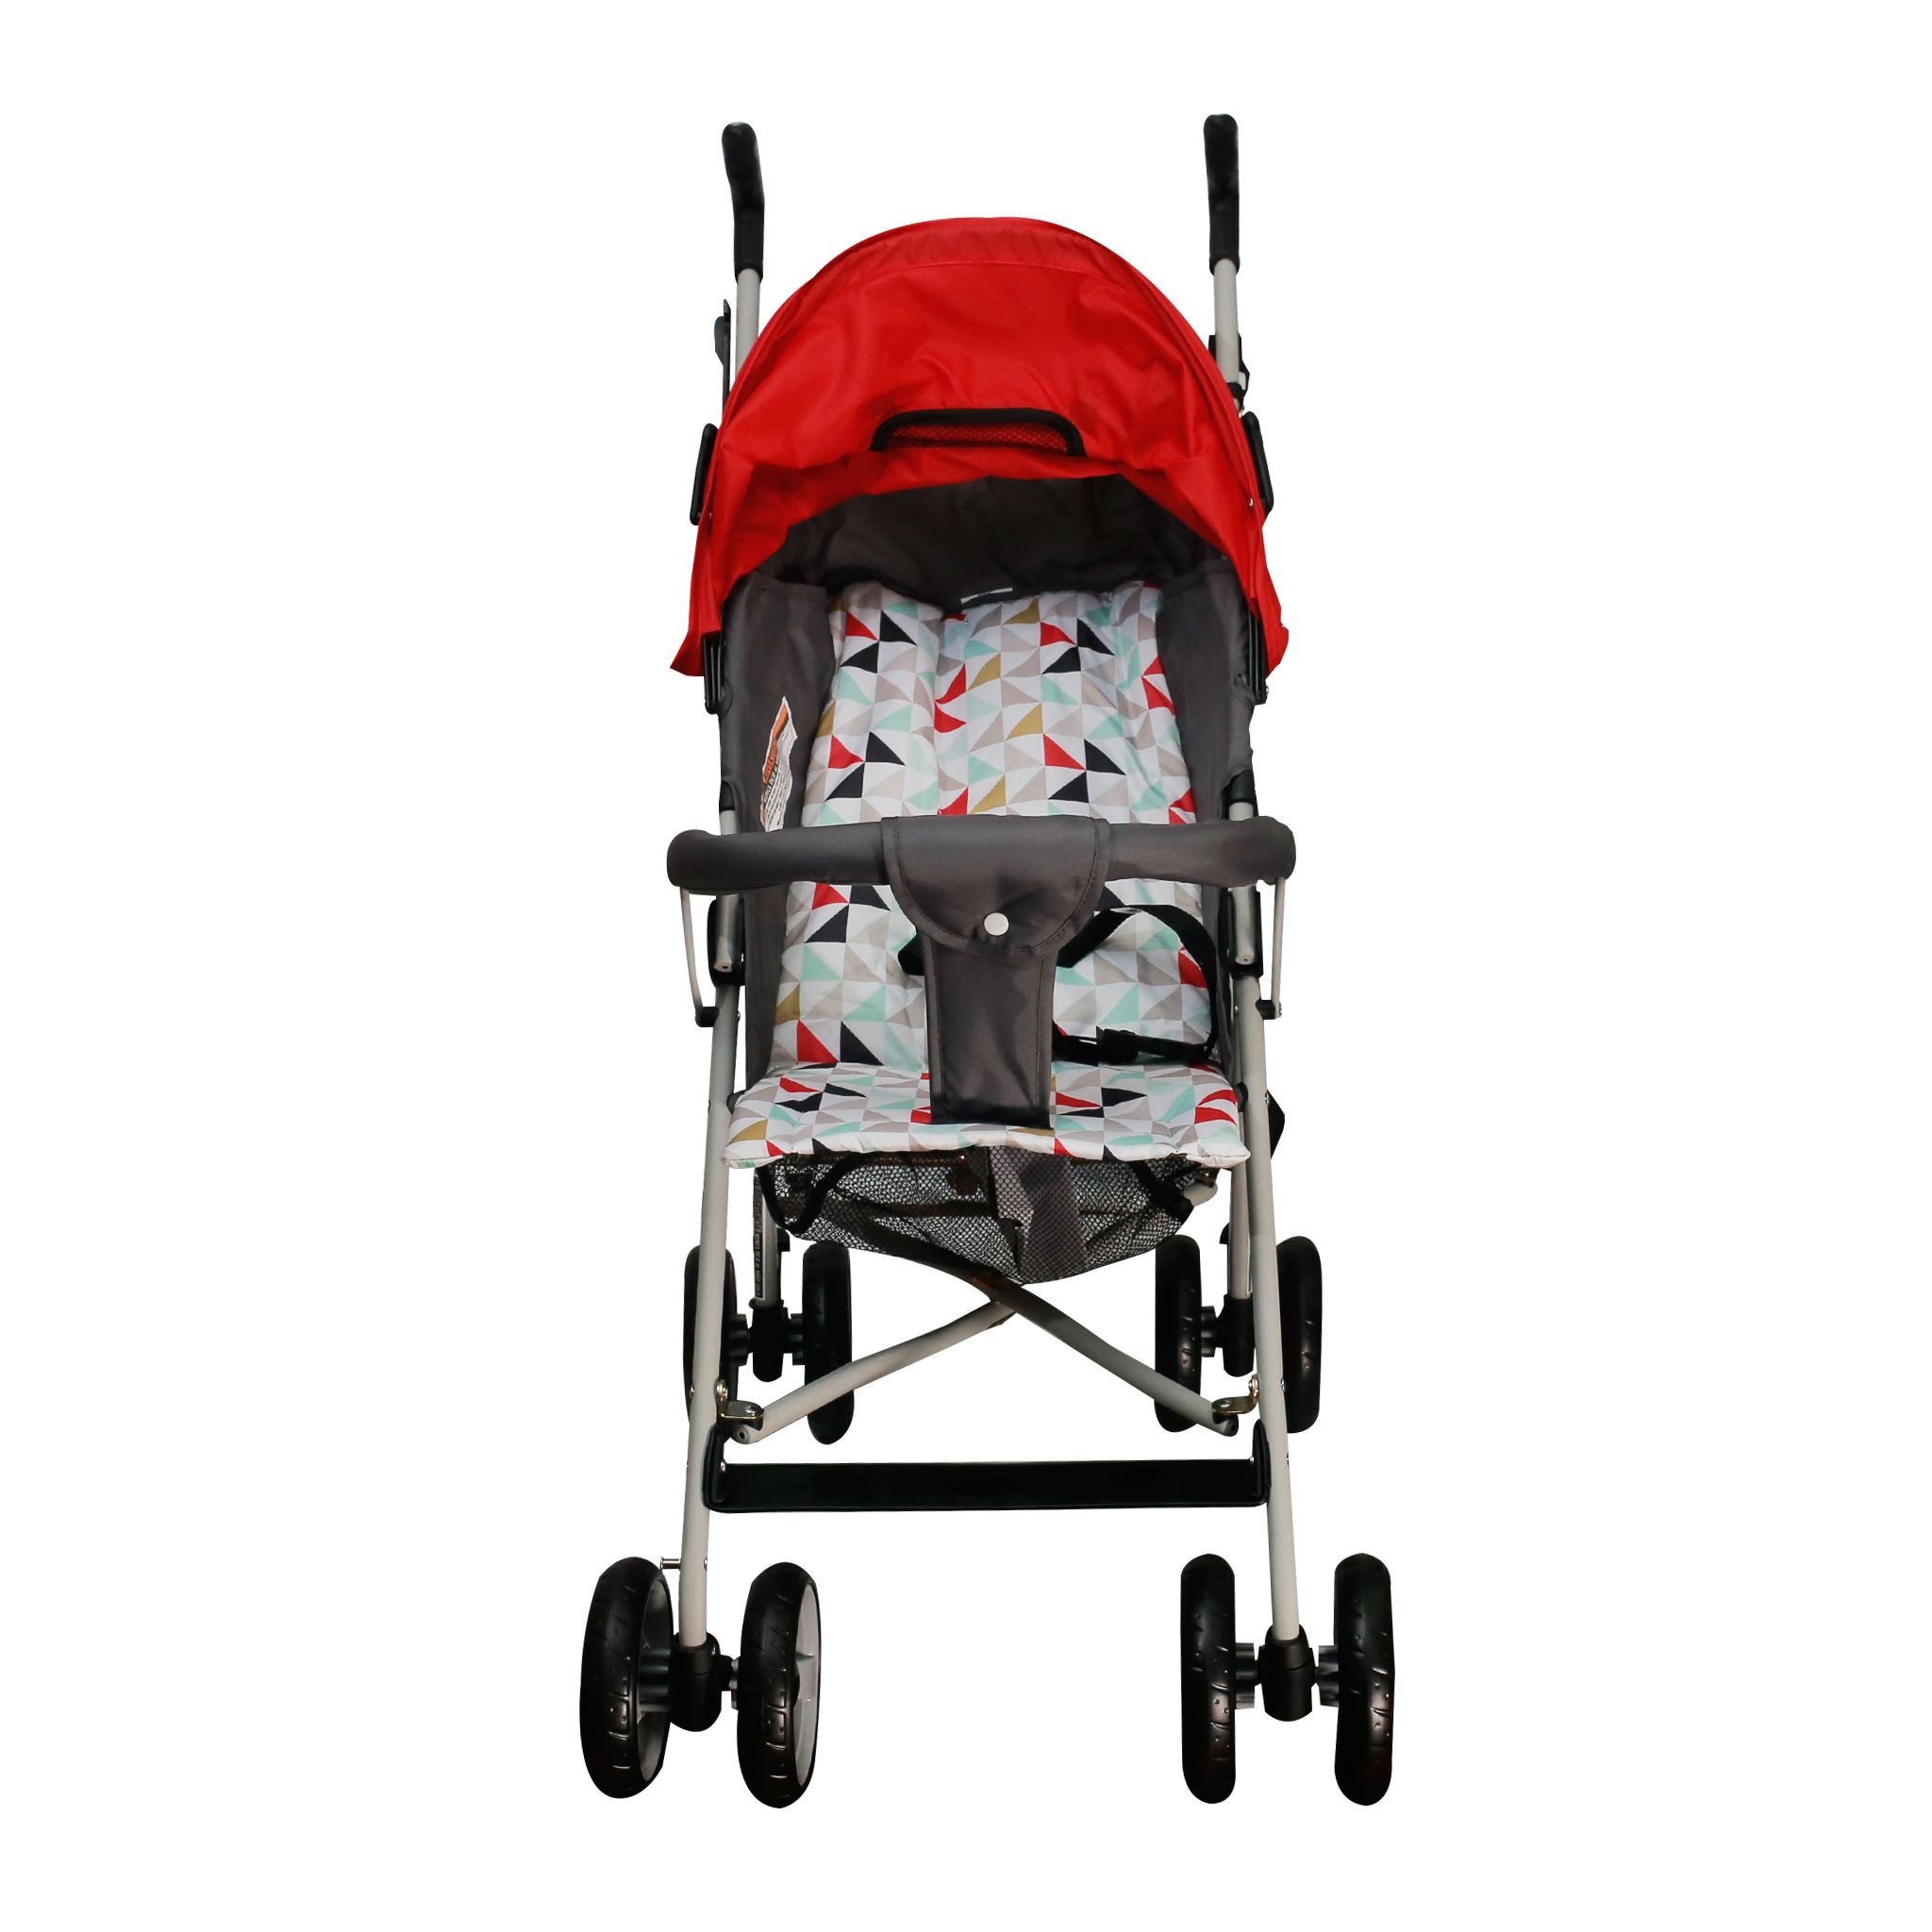 36f6a7ca4 H108 COCHE BASTON SPIN TRIANGLES RED | Juntoz.com